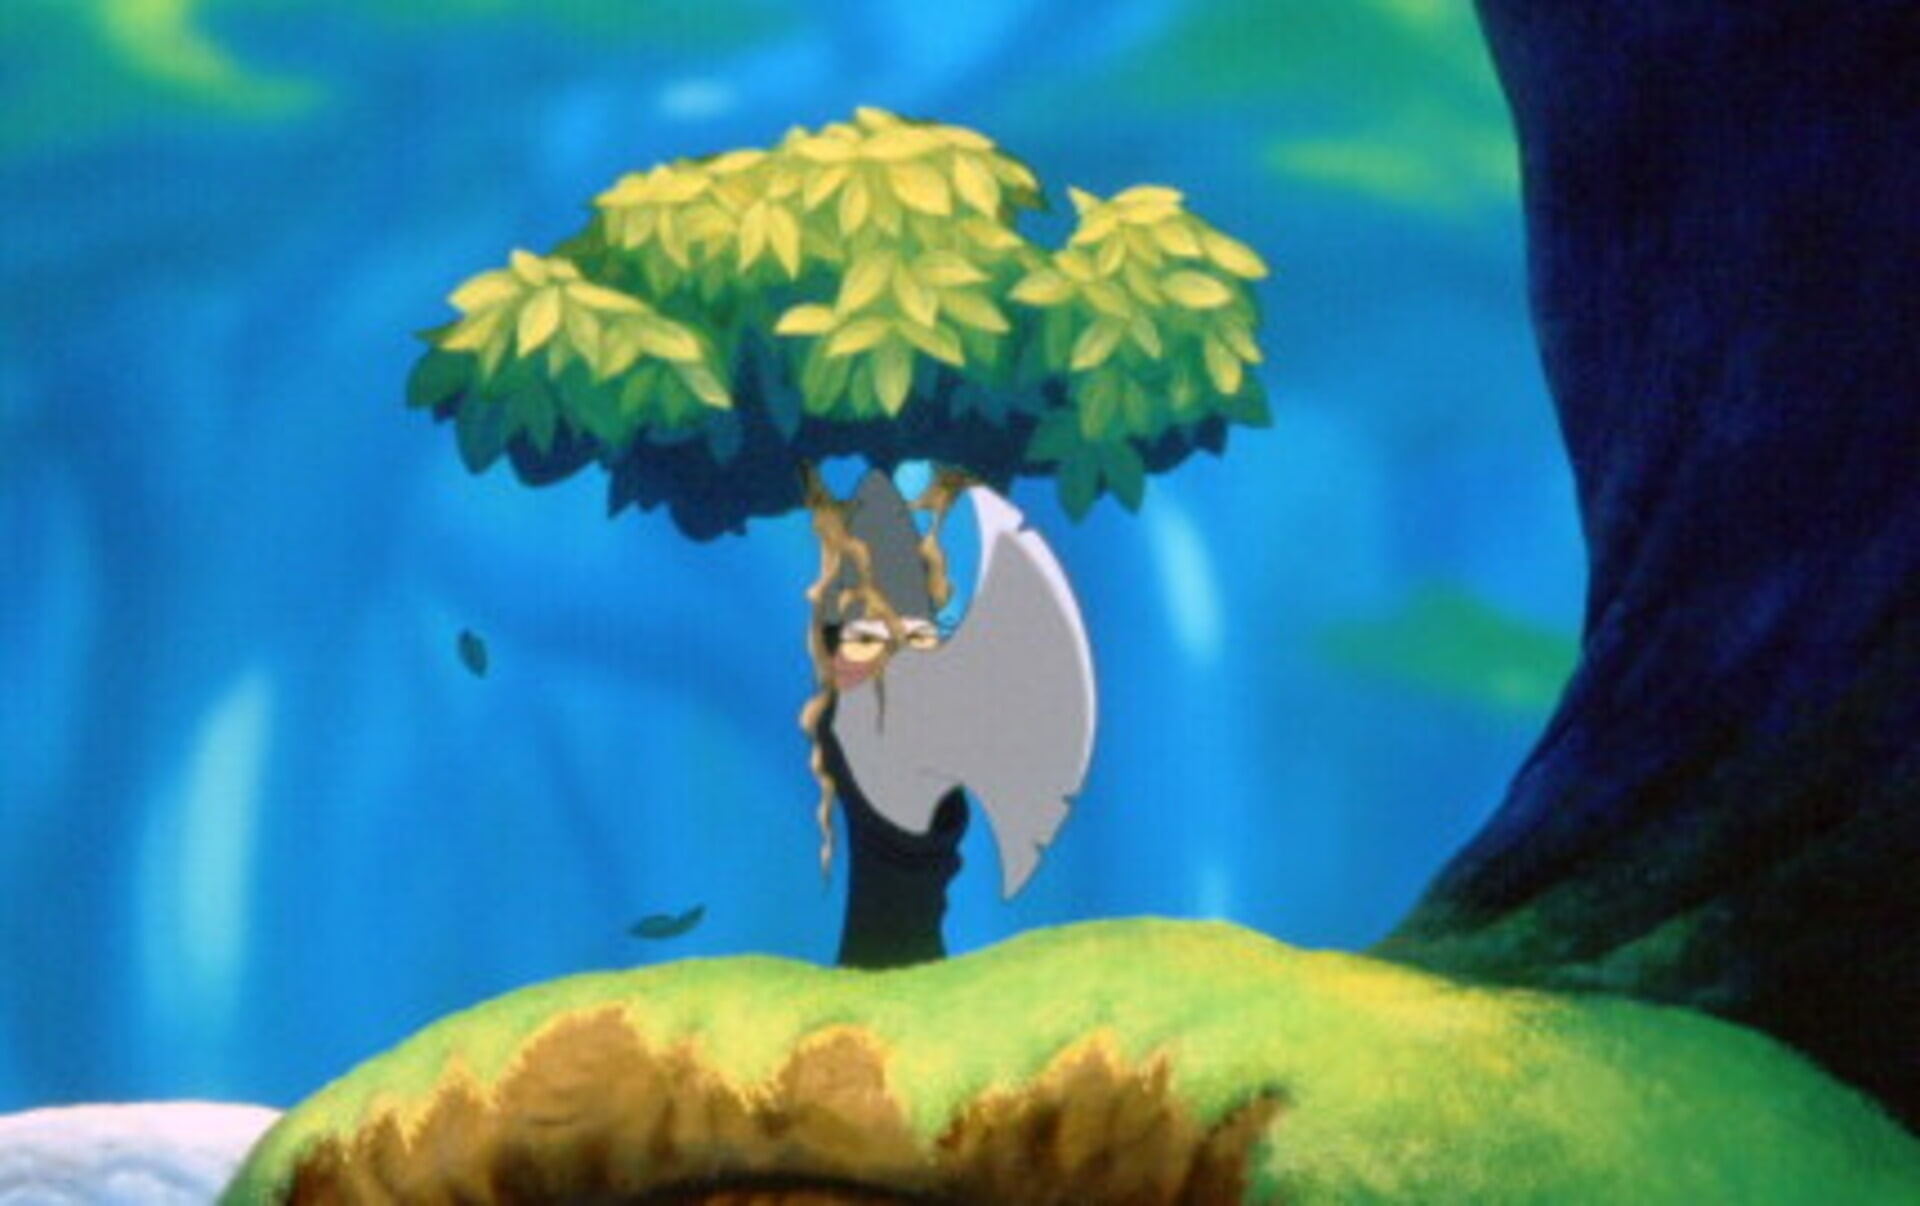 Quest for Camelot - Image 5